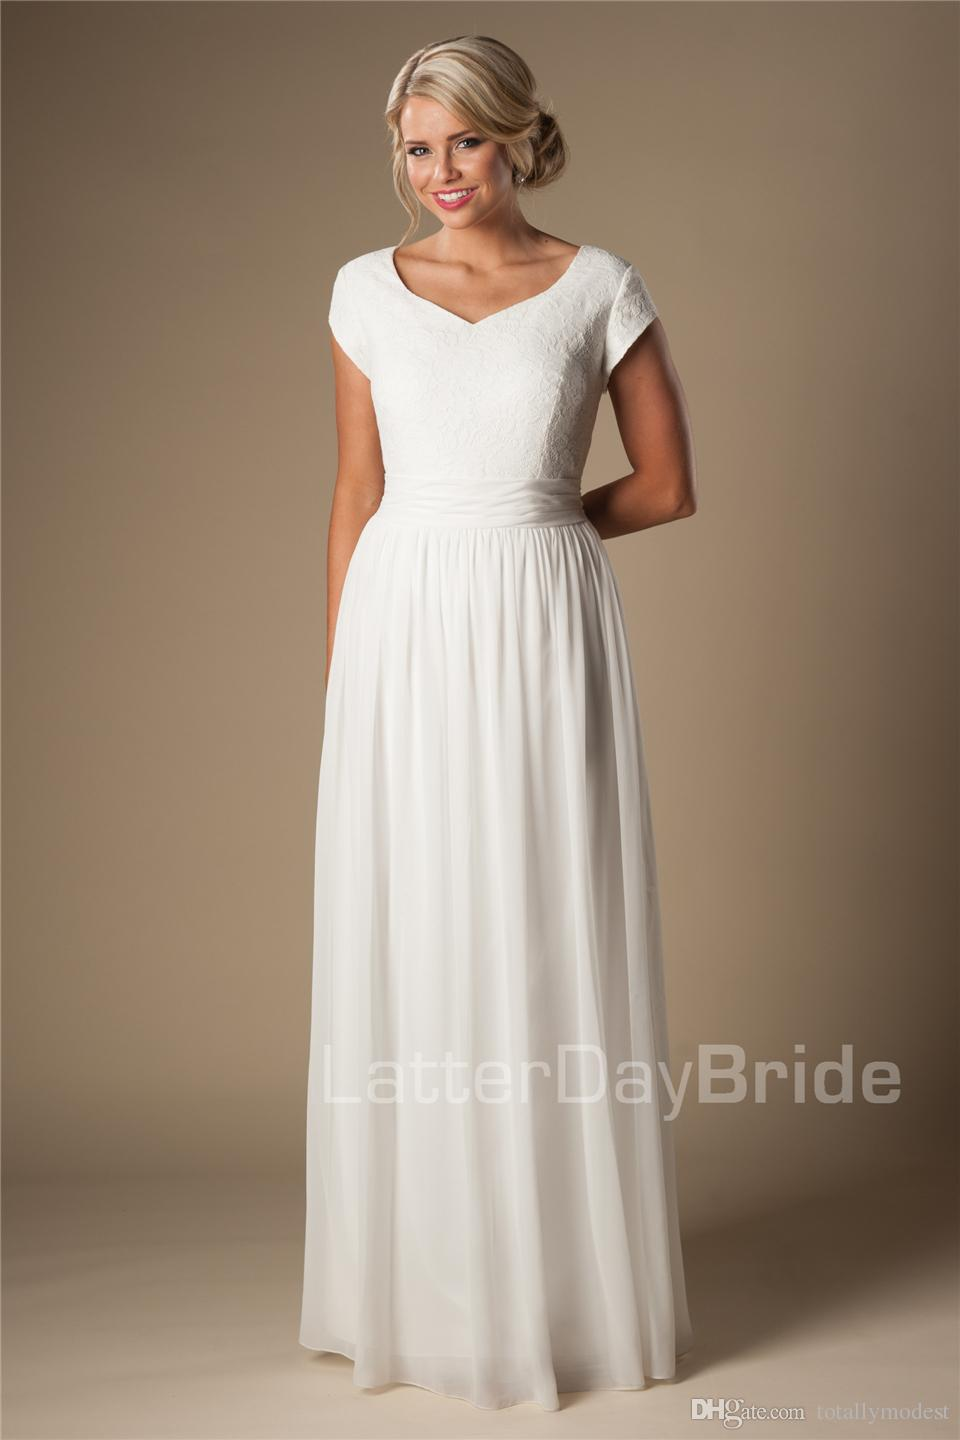 Informal Lace Chiffon Modest Cap Sleeves Wedding Dresses With Short Sleeves Long Floor Bridal Gowns A-line Simple Beach Wedding Gowns Cheap